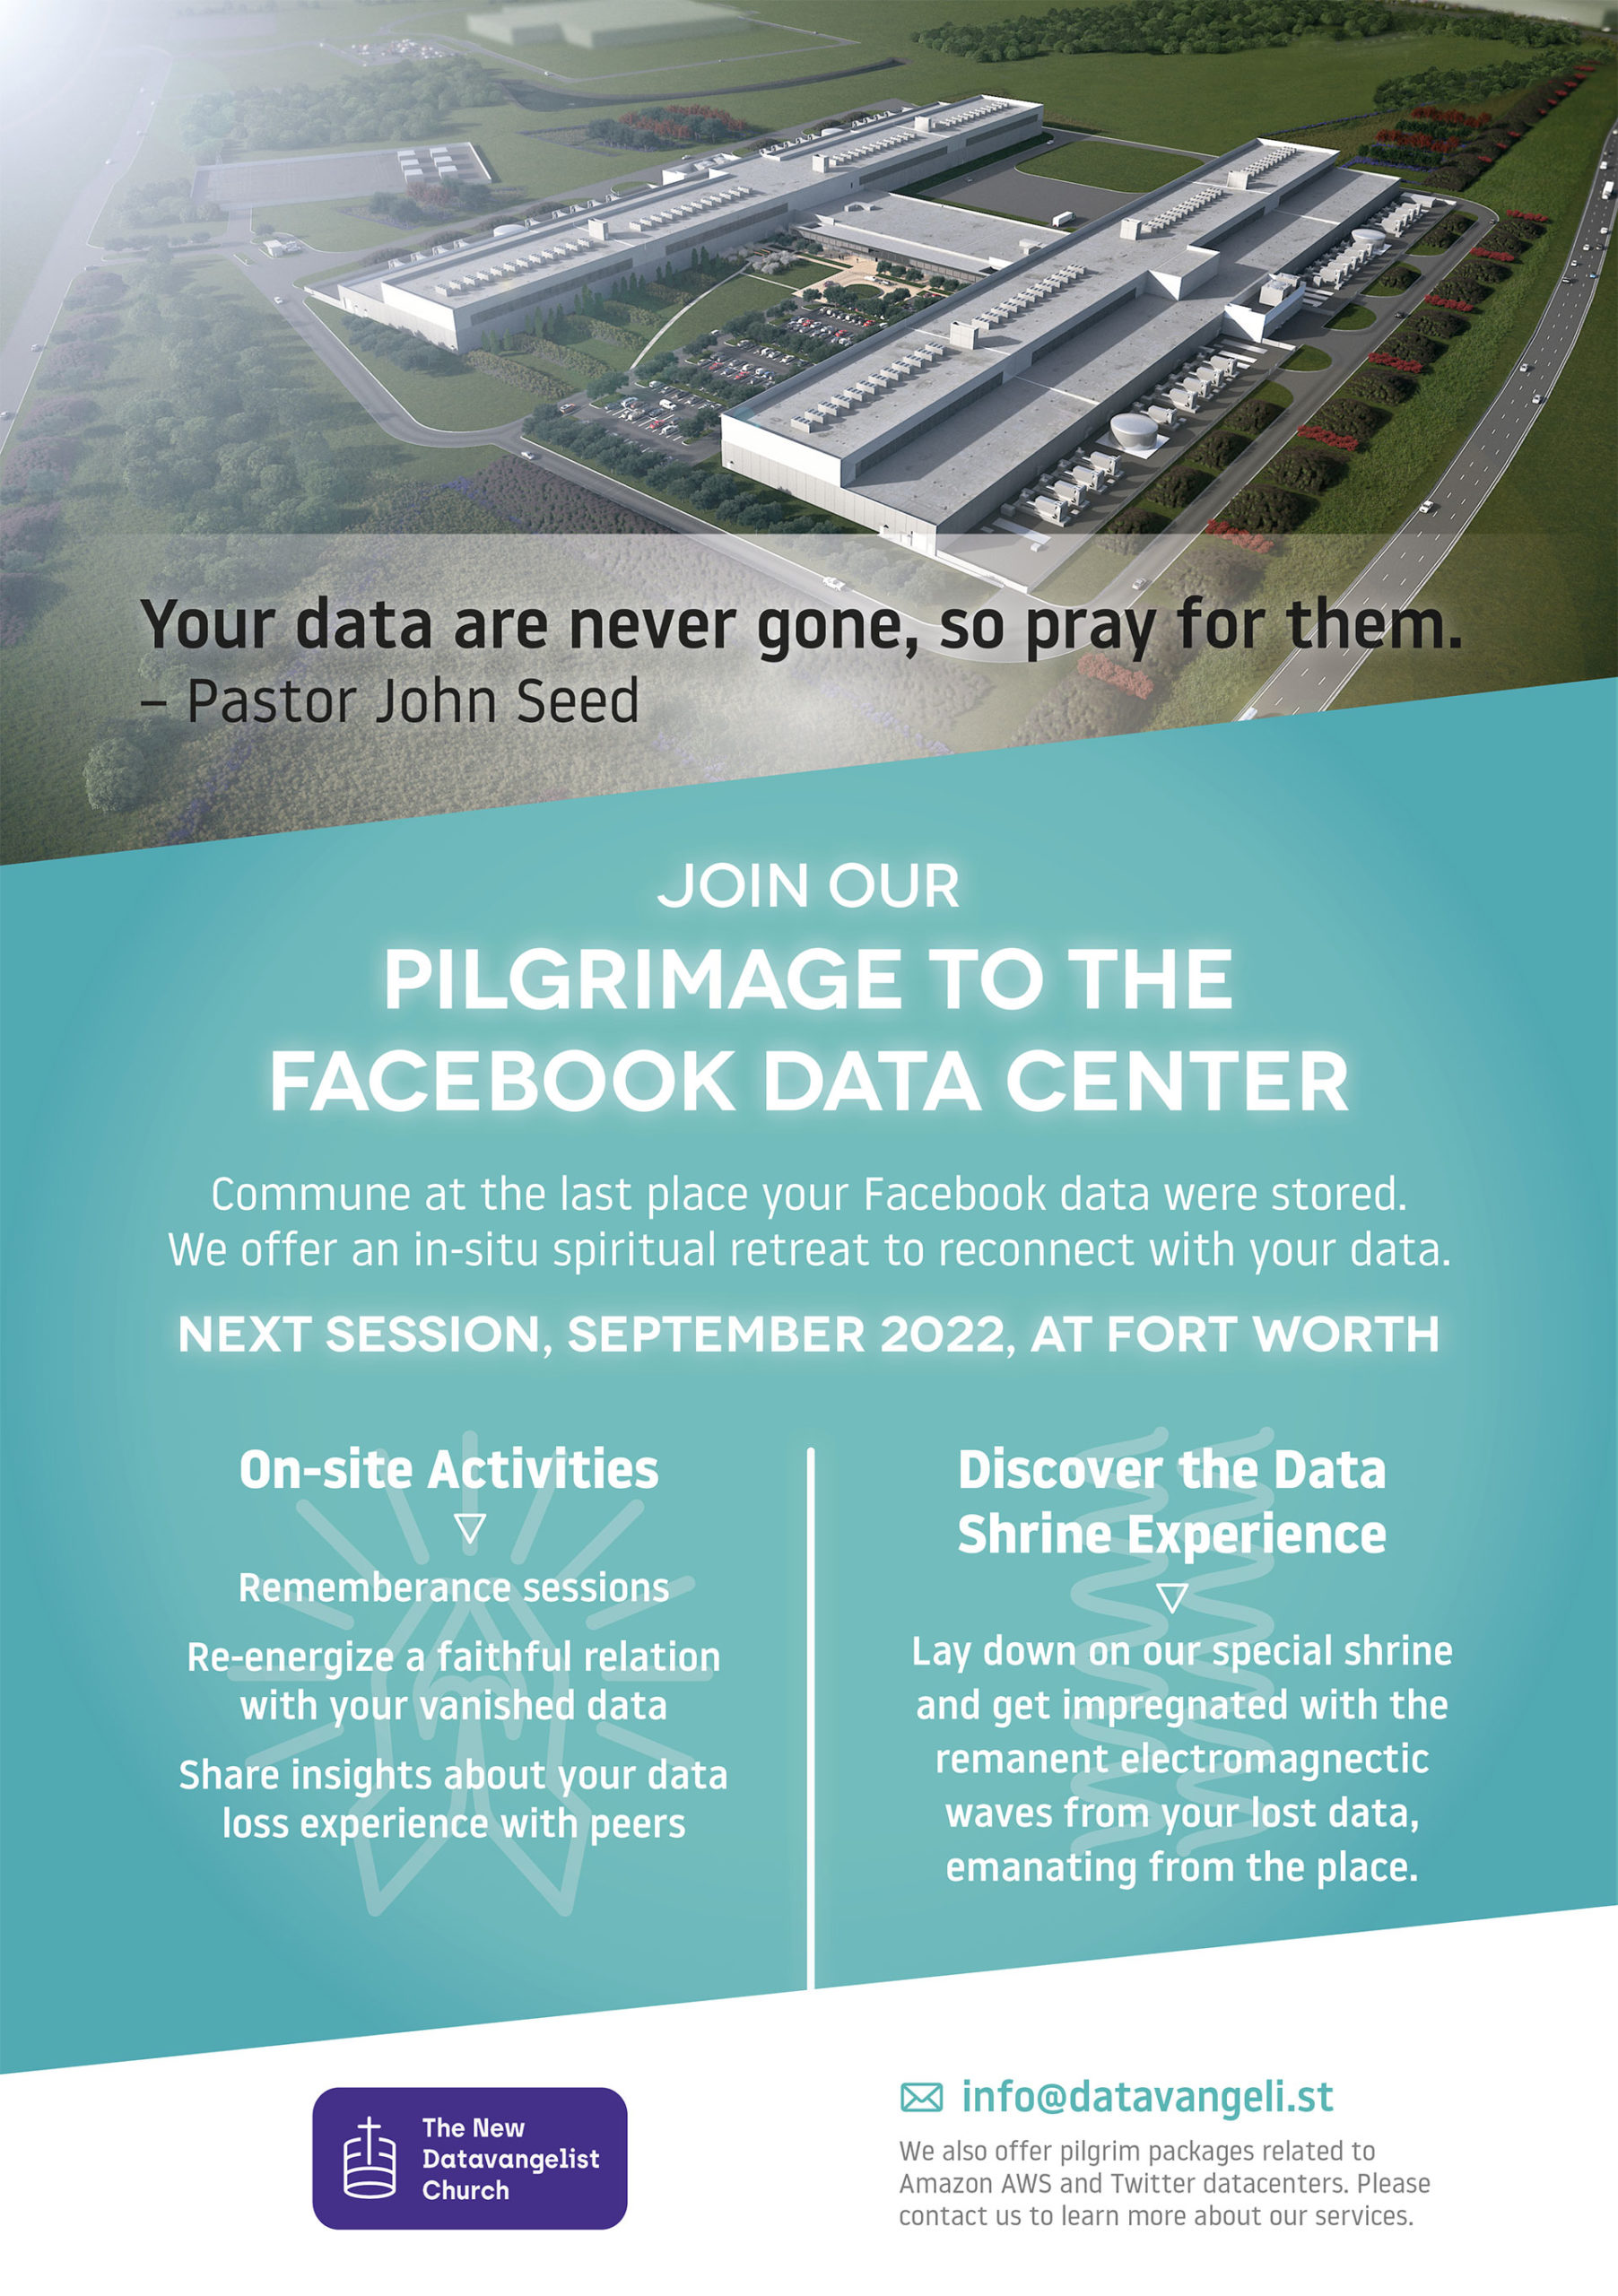 A flyer from the Datavangelist Chruch for a pilgrimage to a Facebook data center